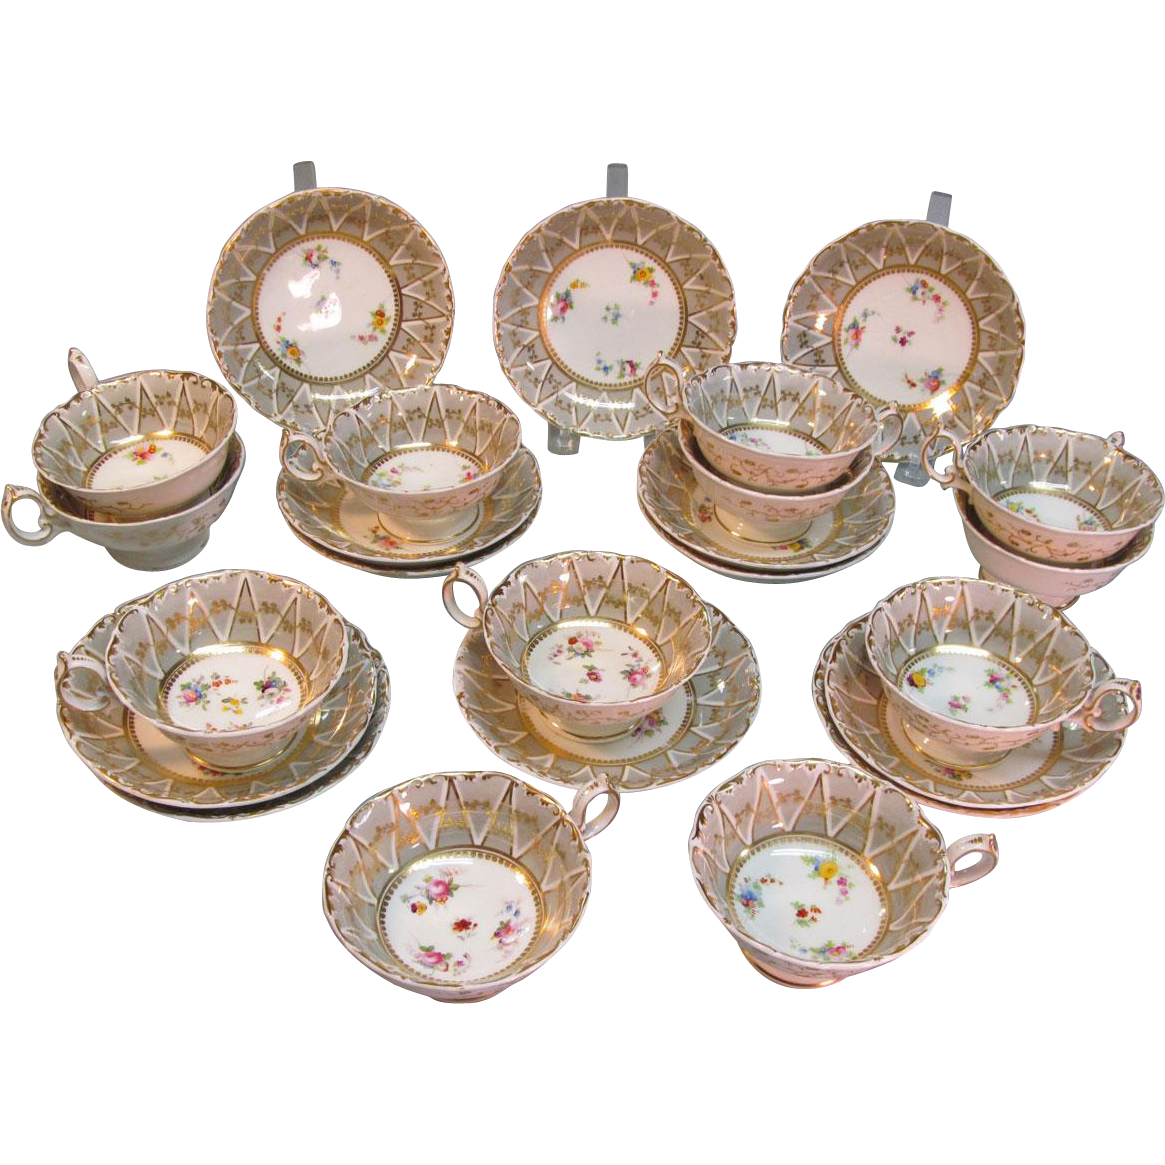 Set of 12 English Porcelain Cups/Saucers ca. 1835